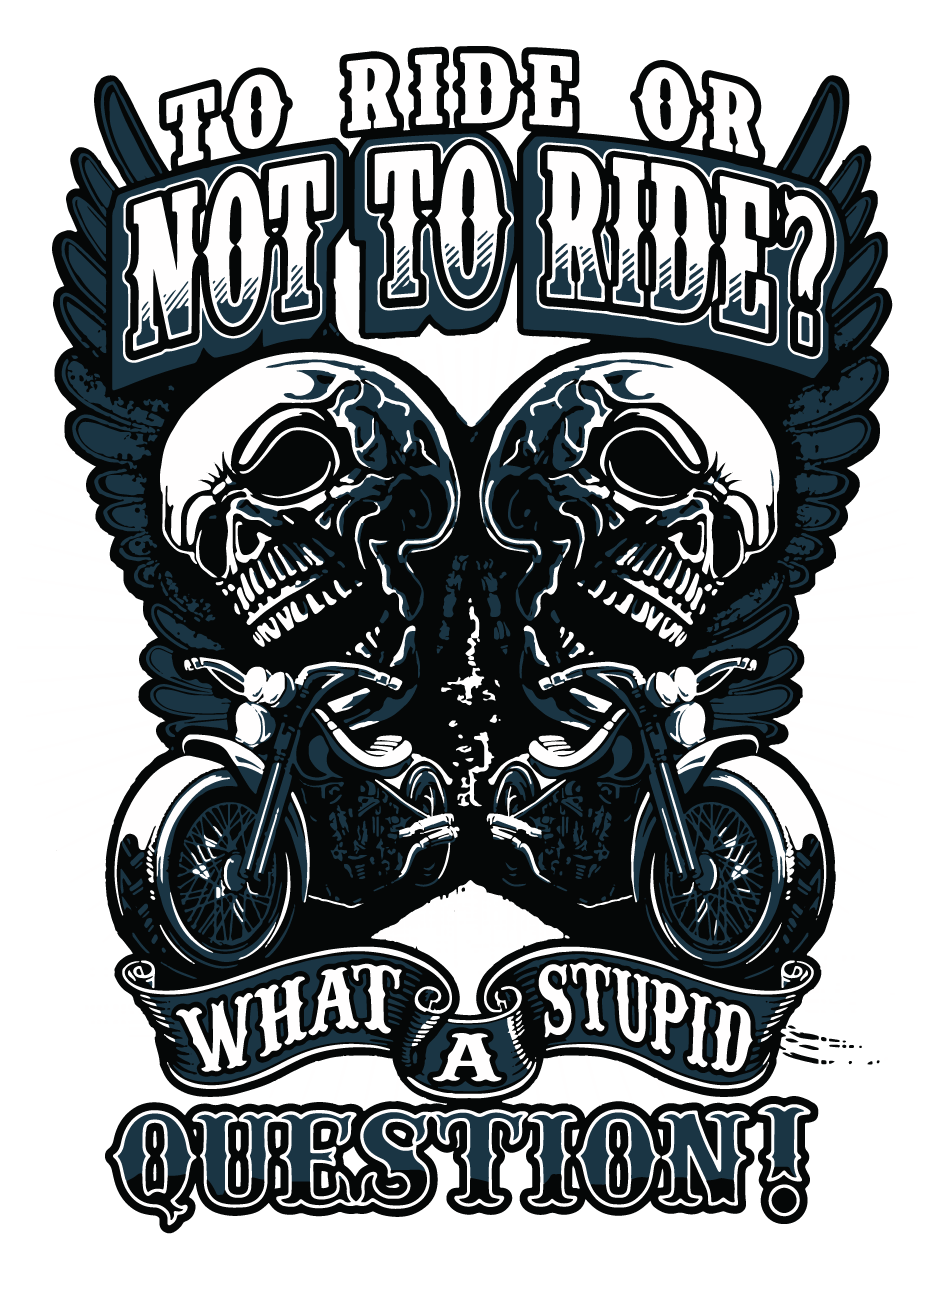 To Ride Or Not To Ride - Men's Motorcycle T-shirt